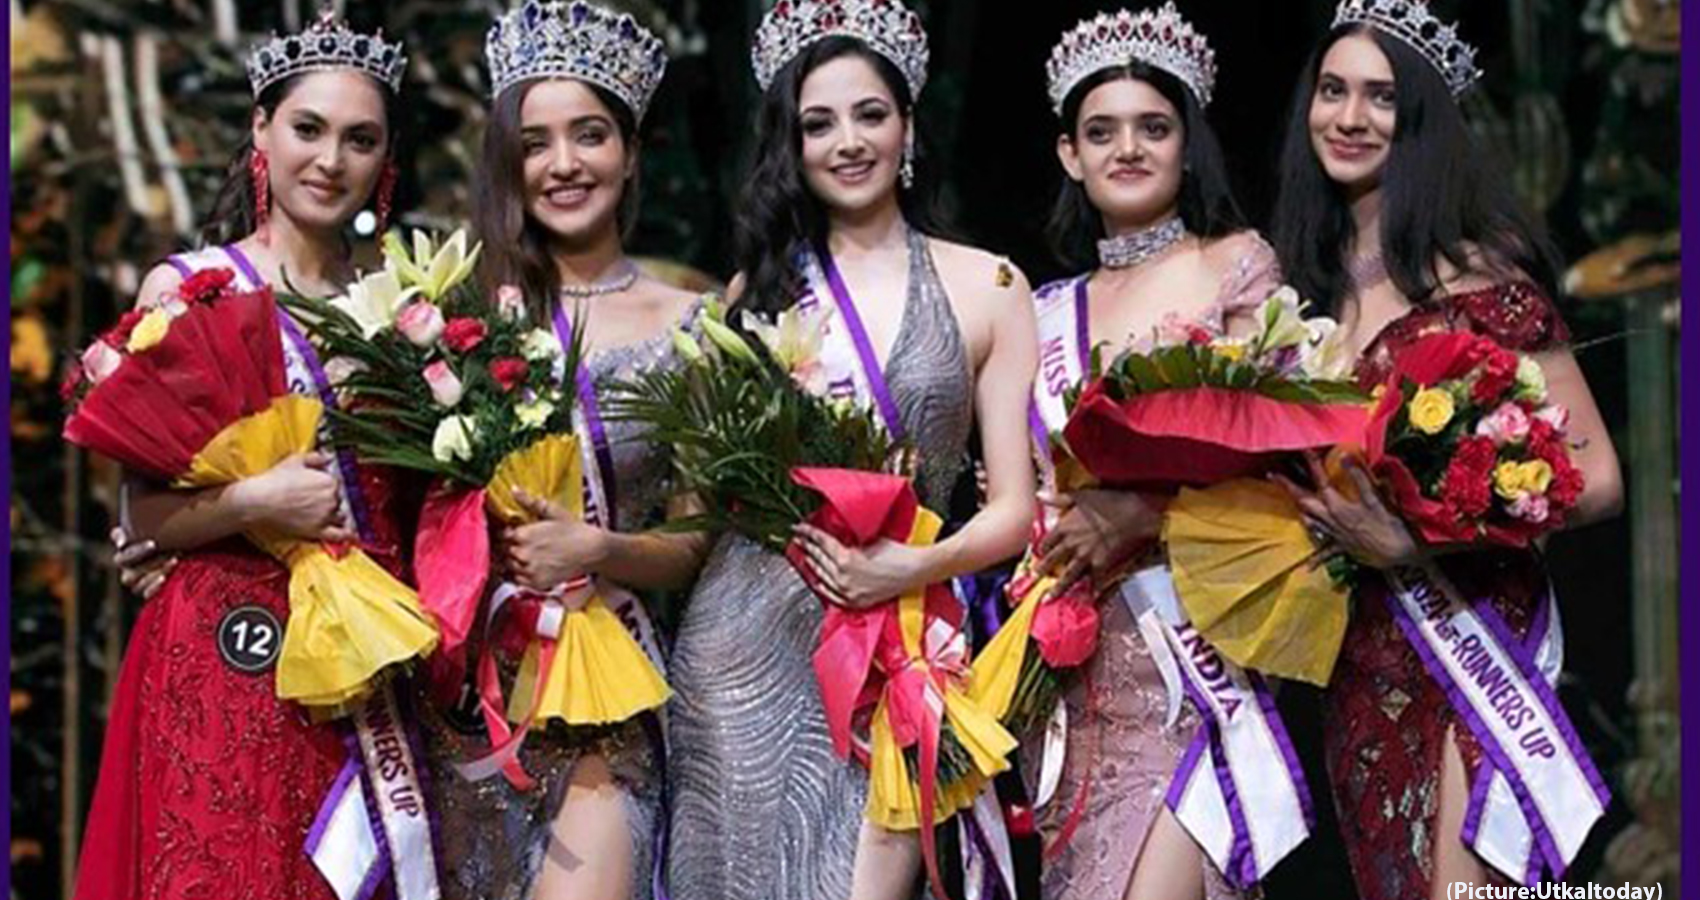 Zoya Afroz Crowned As The Miss India International 2021